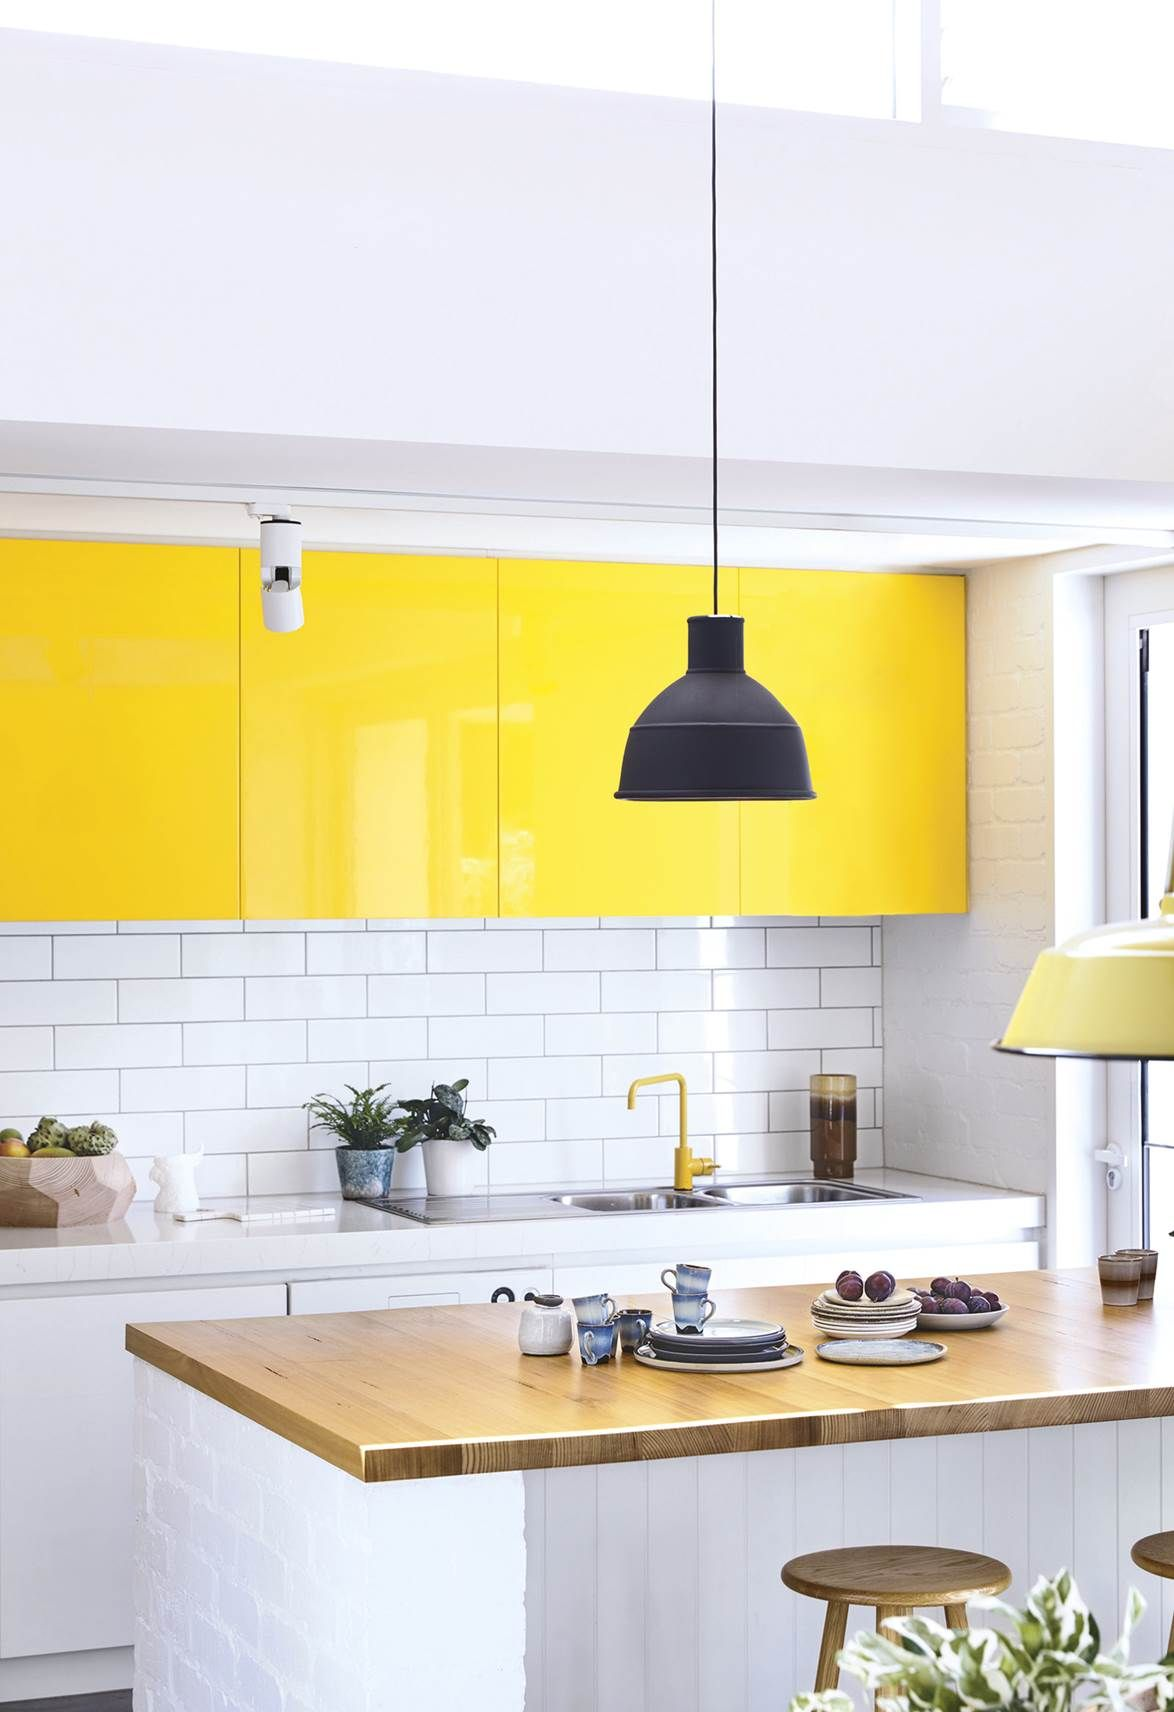 20 kitchens with clever design ideas to steal | Yellow ... on golden yellow kitchen ideas, bright country kitchen ideas, yellow kitchen decorating ideas, yellow kitchen wall ideas, bright yellow room ideas, bright yellow interiors, bright yellow fashion, gray and yellow kitchen ideas, bright yellow bathroom ideas, bright yellow kitchen decorations, yellow kitchen color ideas, bright yellow living rooms, blue and yellow kitchen ideas, lemon yellow kitchen ideas, yellow country kitchen ideas, soft yellow kitchen ideas, bright yellow color, bright yellow dining room, bright yellow walls, bright yellow laundry rooms,